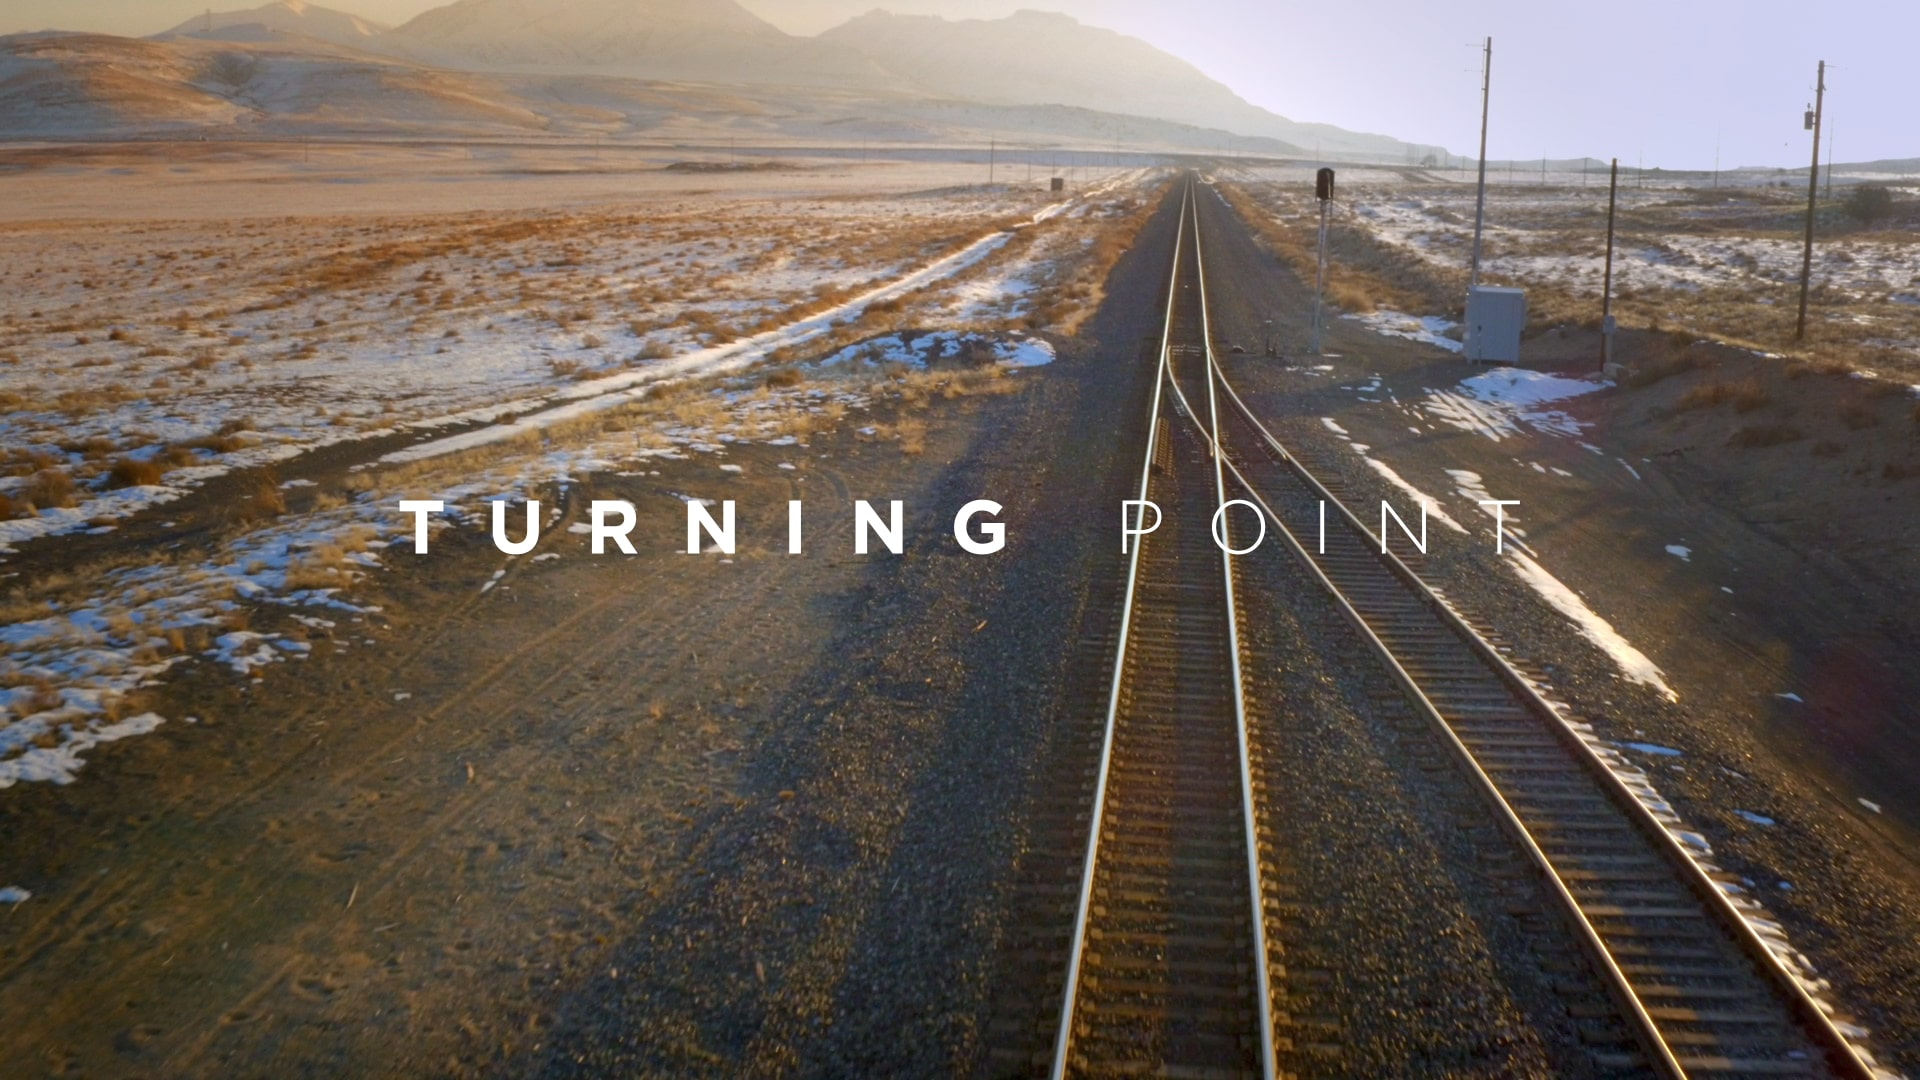 Turning Point is a collection of inspiring stories about people whose lives have changed irrevocably due to one pivotal decision.